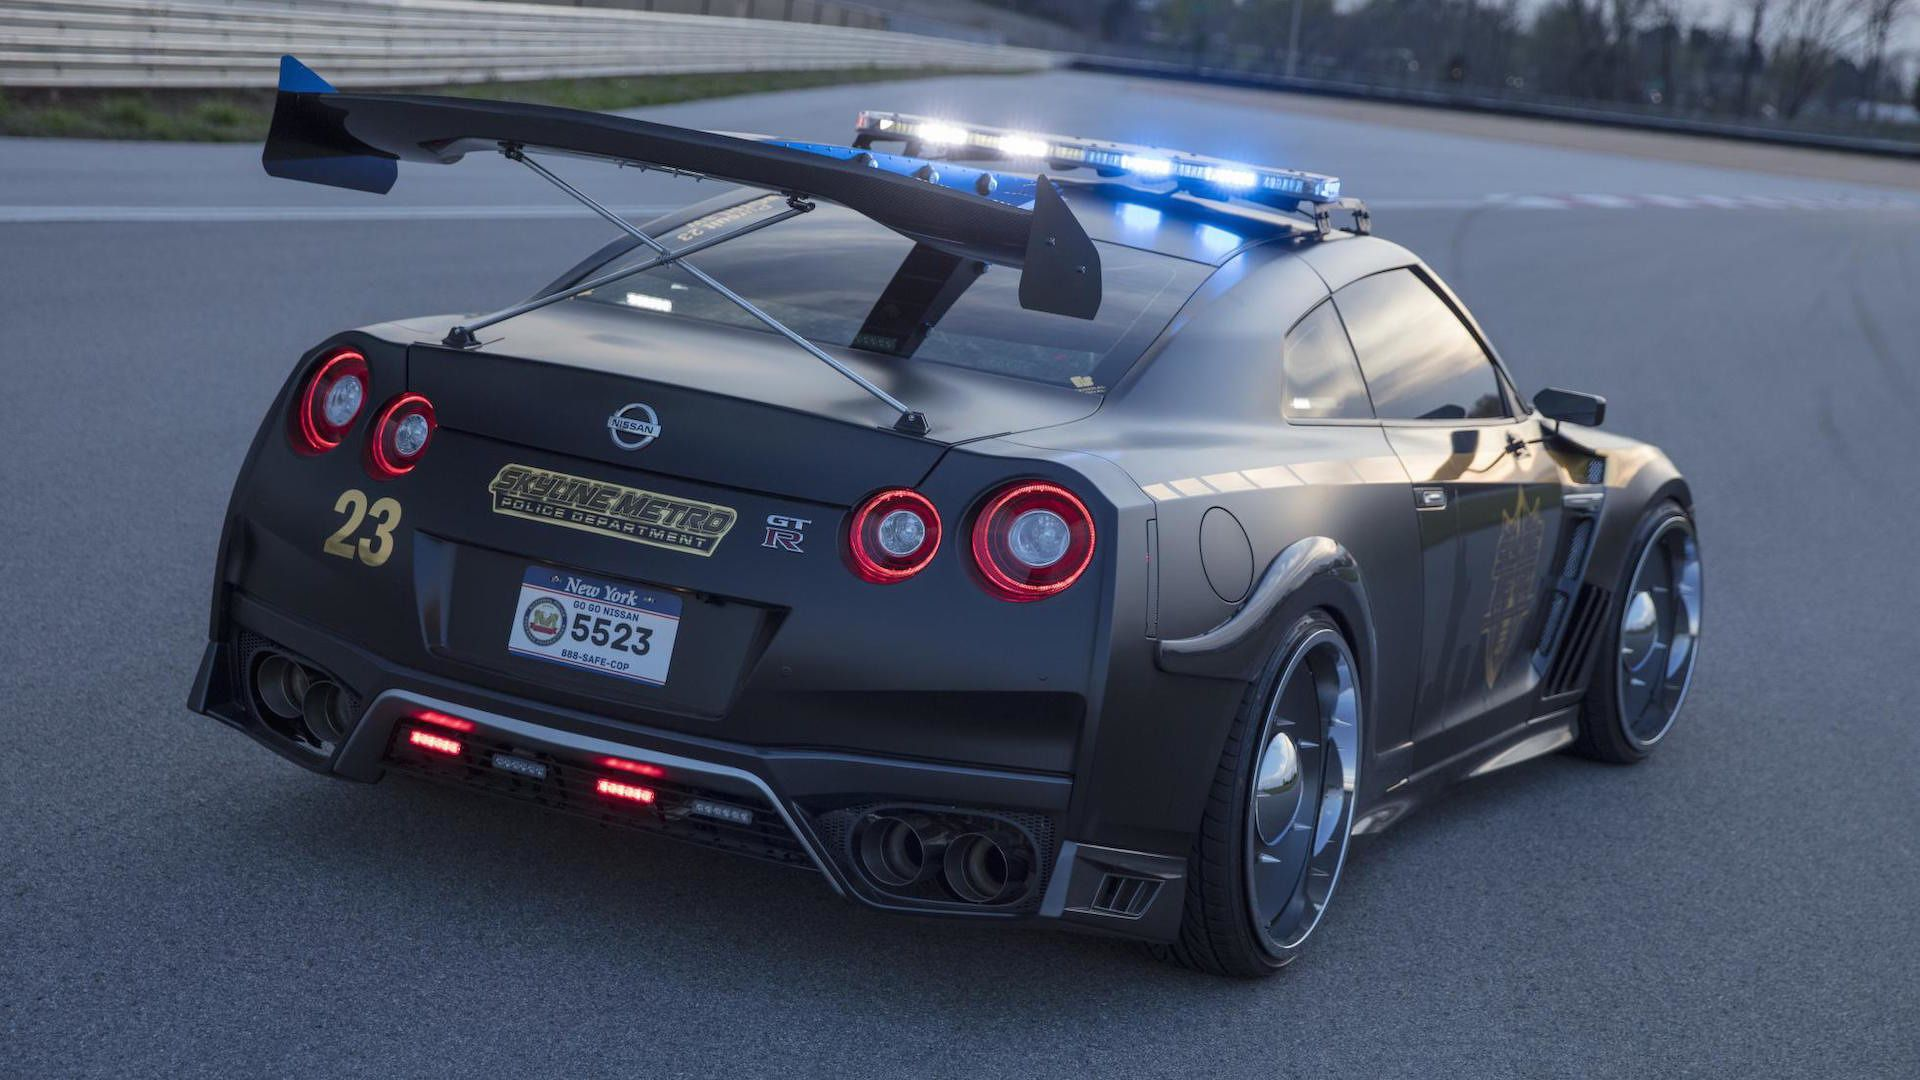 Nissan Took Its 565 Horsepower Gt R Supercar And Turned It Into A